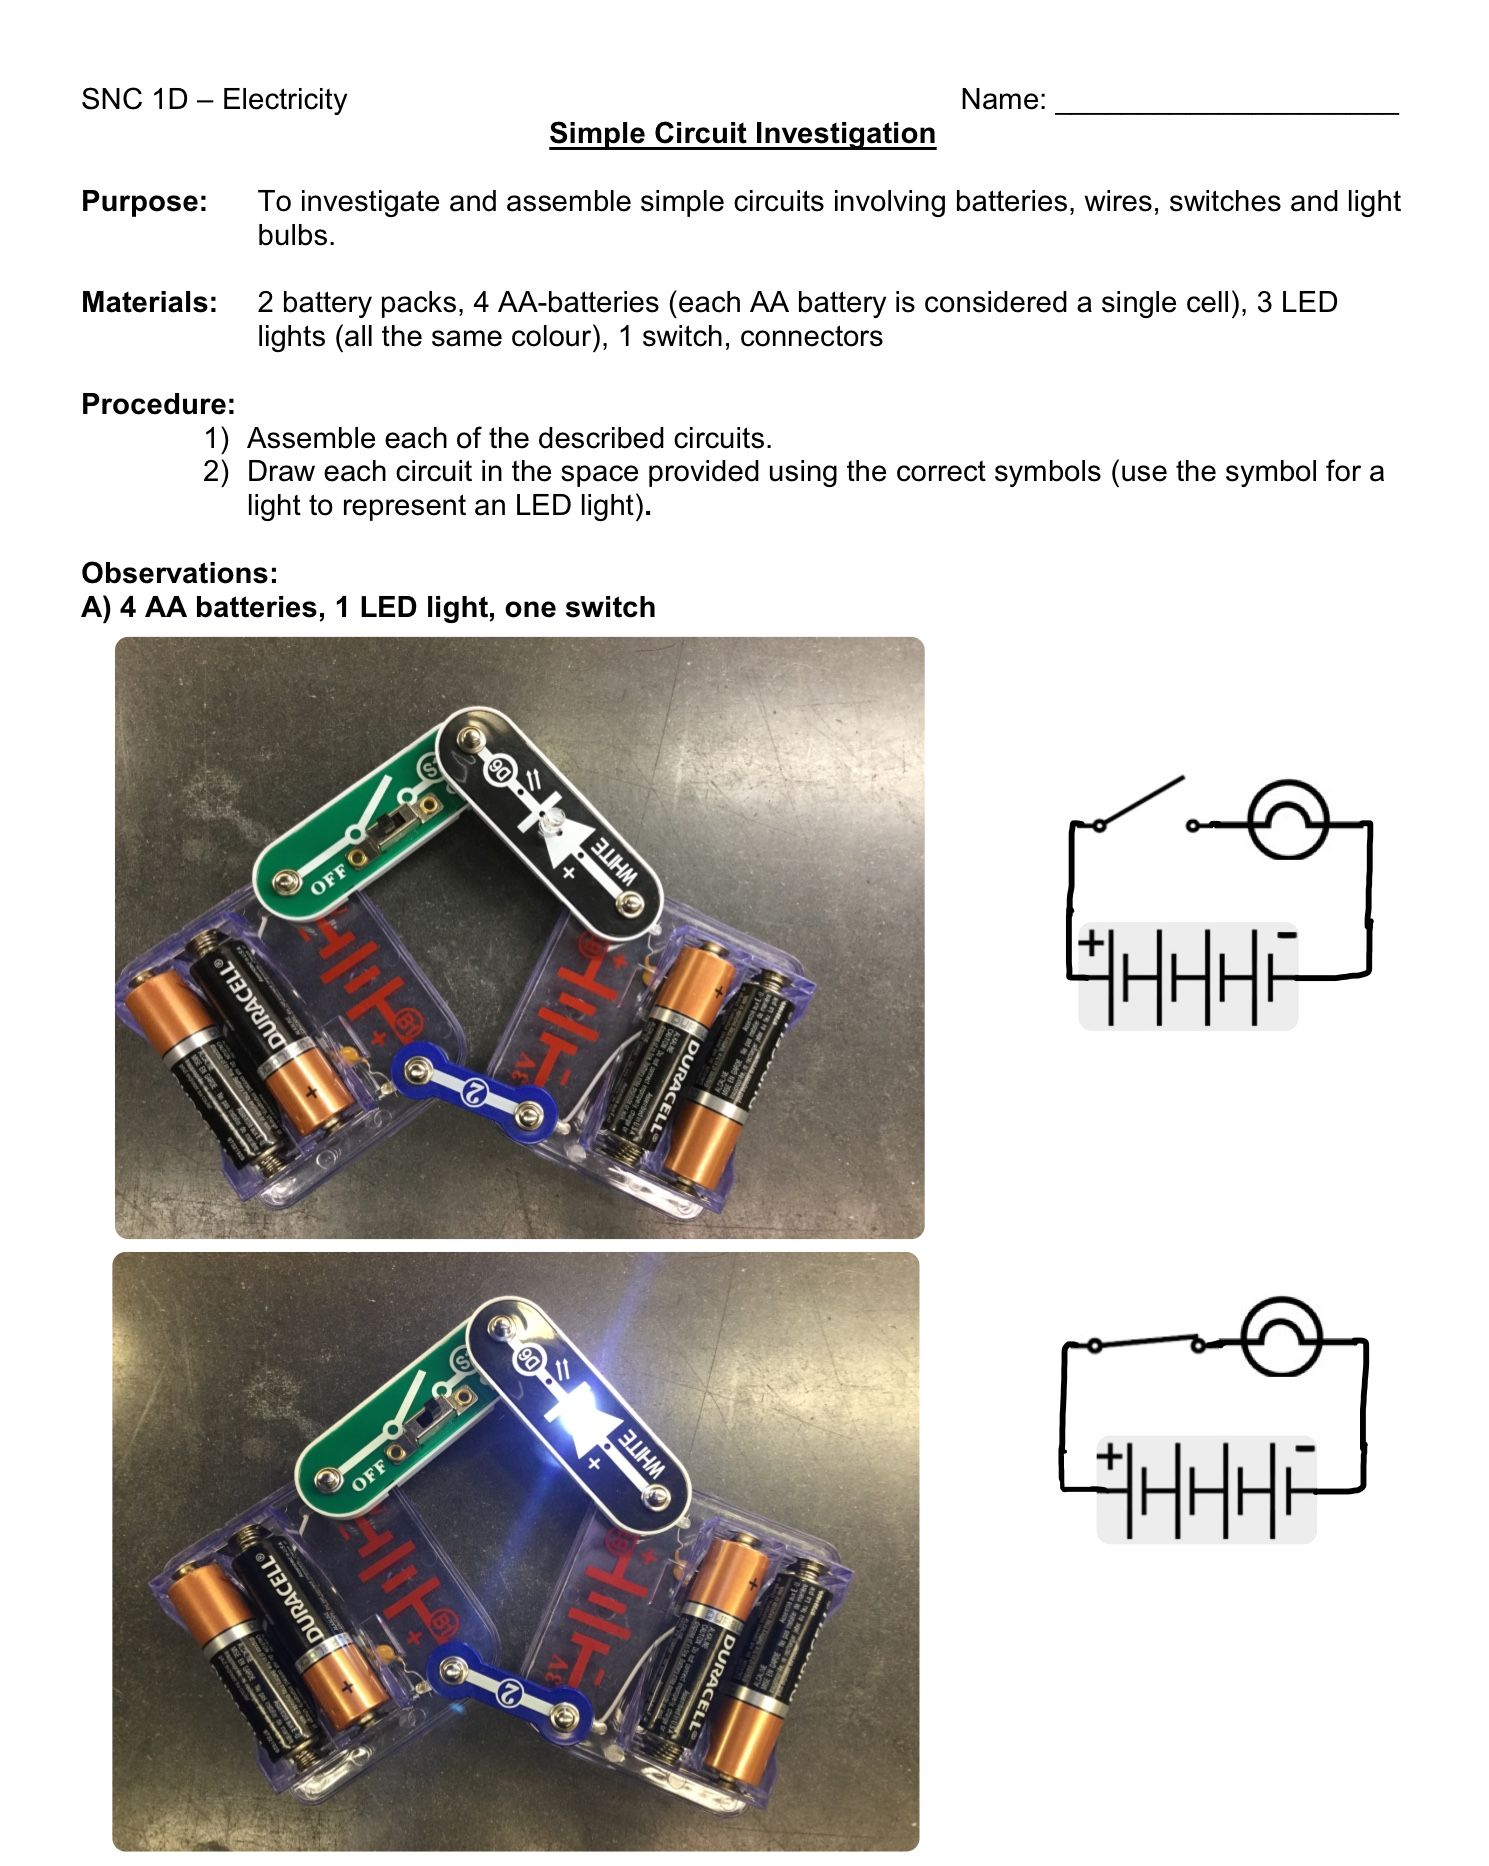 Simple Circuit Investigation